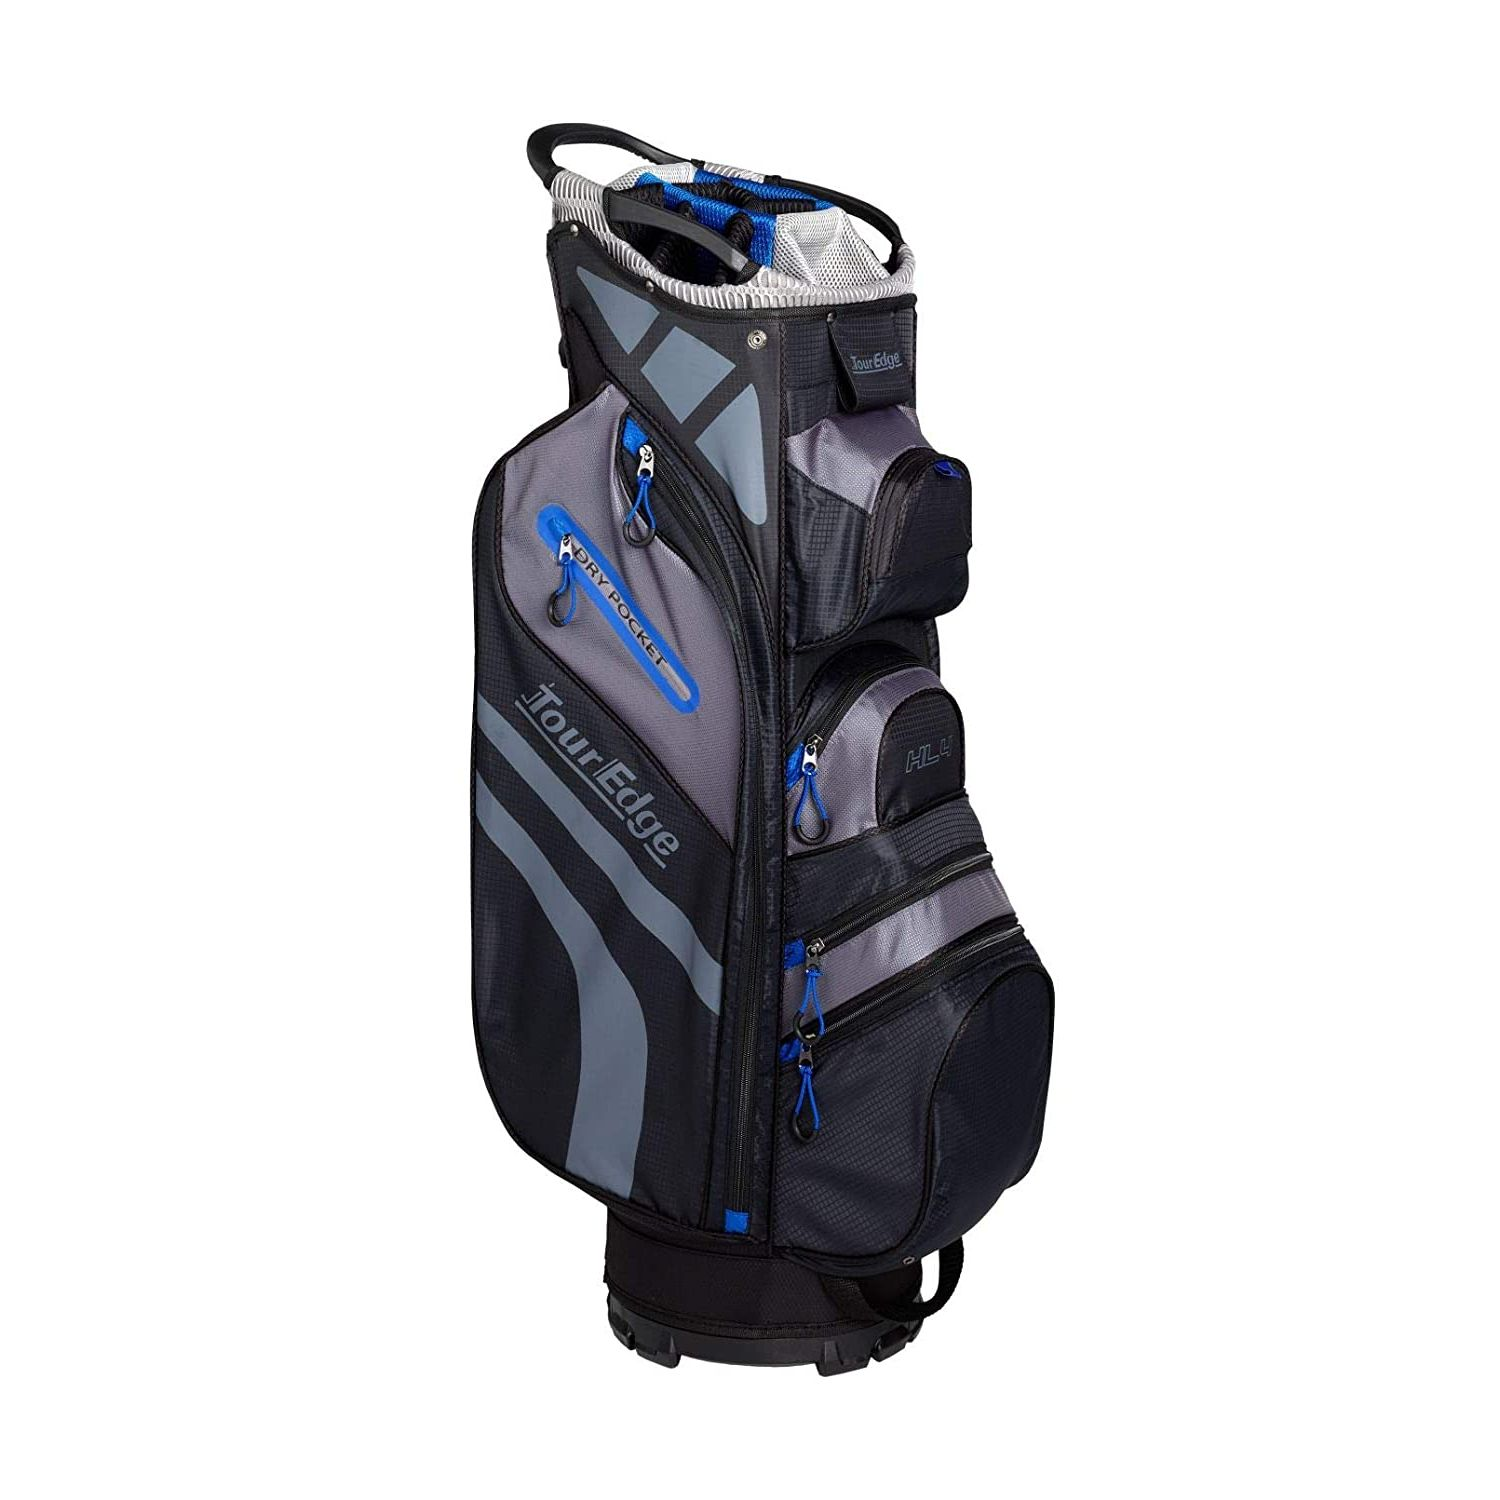 Tour Edge Hot Launch HL4 Golf Cart Bag-Black Blue Grey